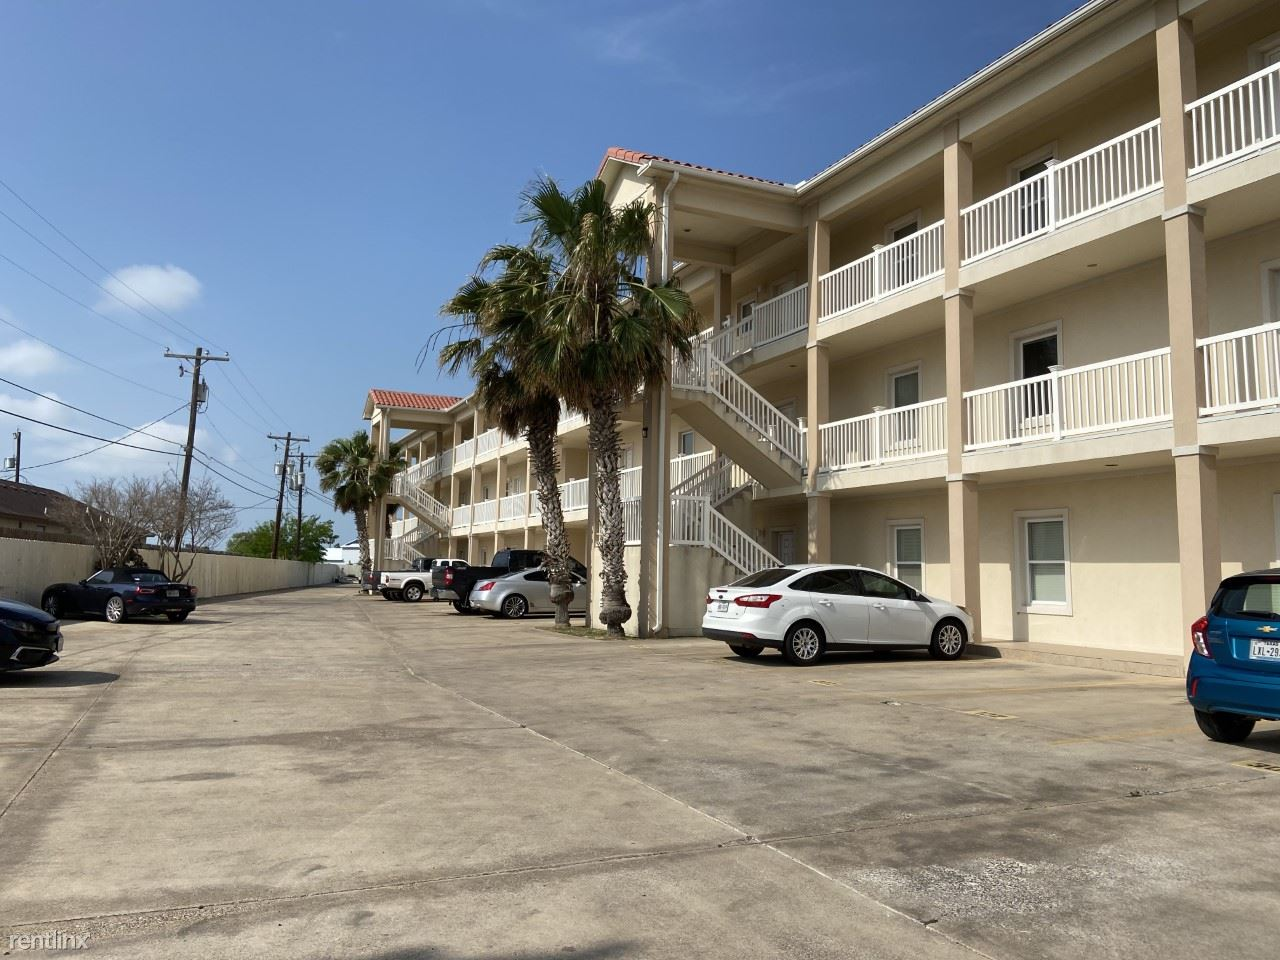 1506 Hwy 100 - Unit 104 First Floor, Port Isabel, TX - 1,300 USD/ month